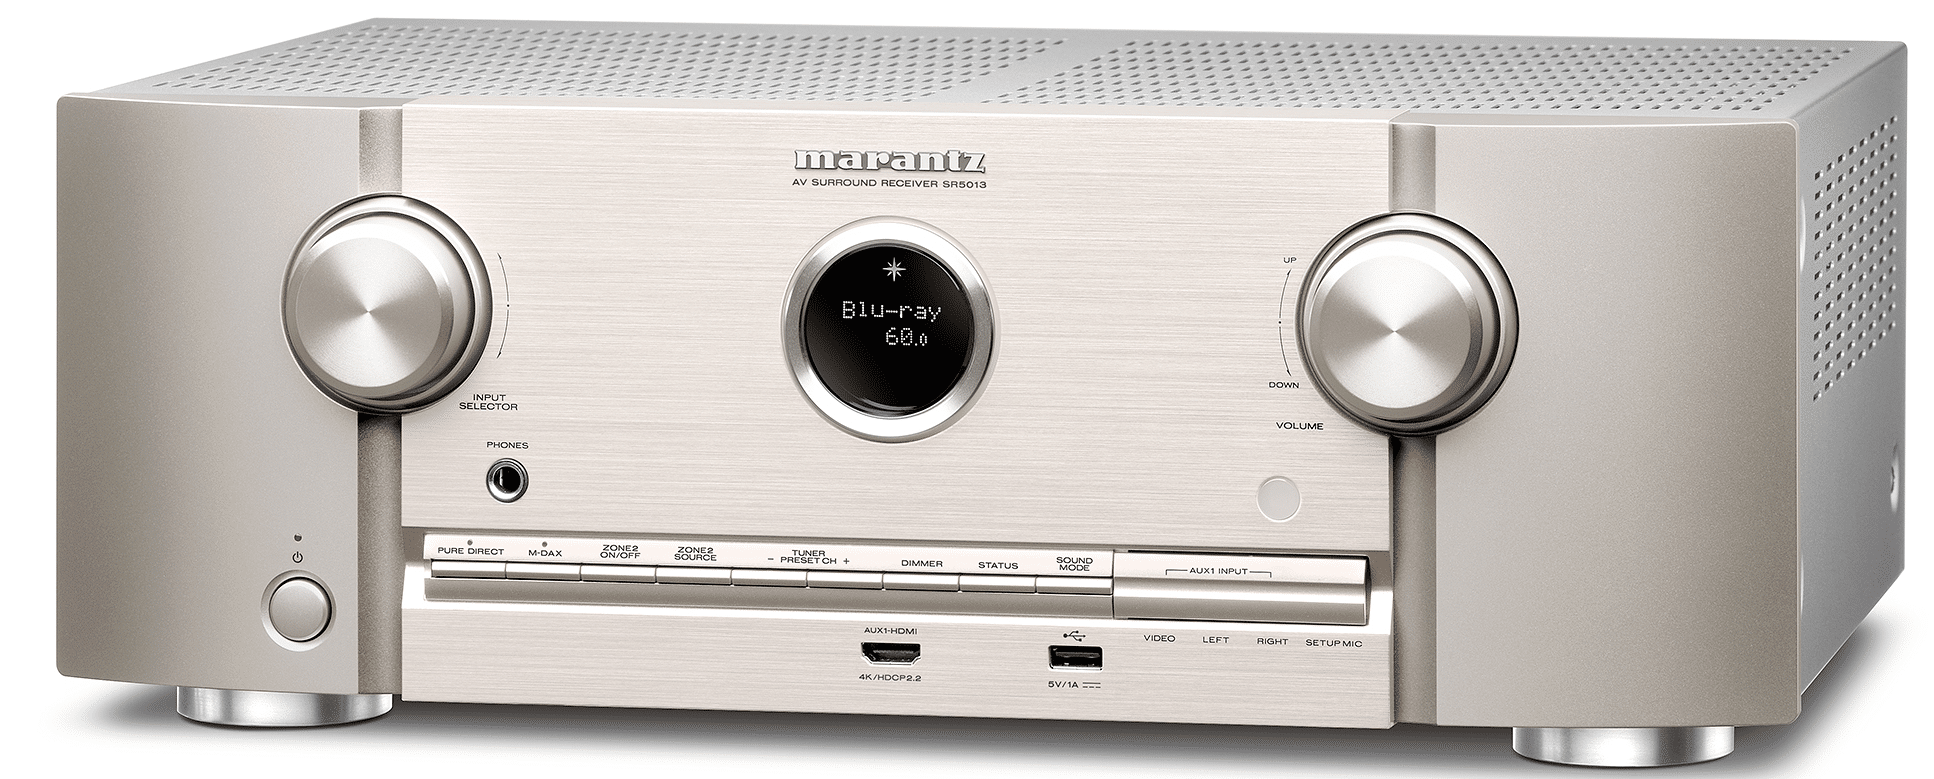 SR6013 and SR5013 Receivers From Marantz - The Audiophile Man